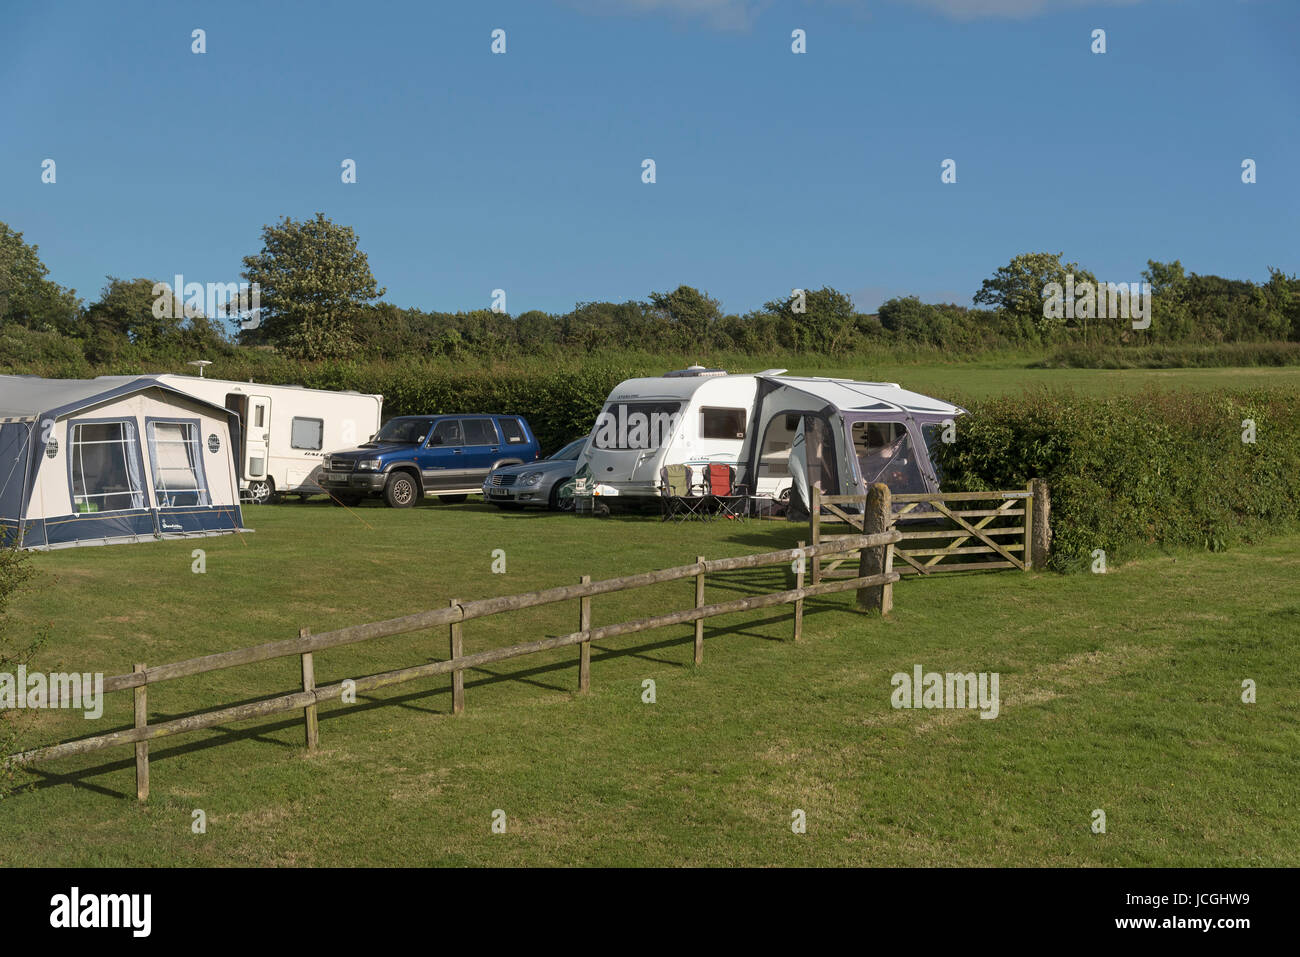 Campsite on farmland in the Dorset countryside England UK. June 2017 - Stock Image